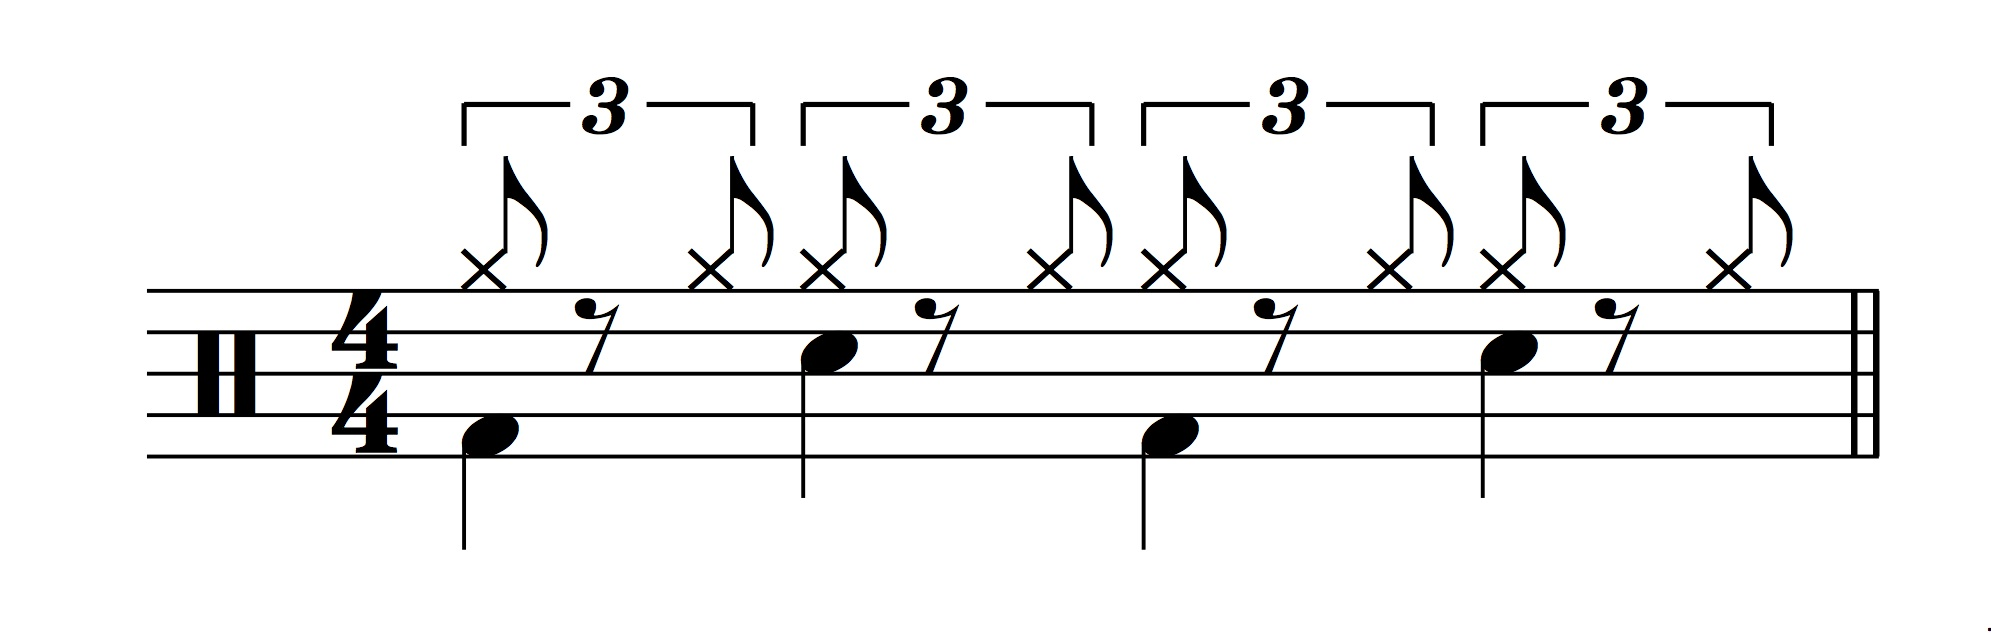 Figure 5.: Typical drum notation for a standard shuffle beat.